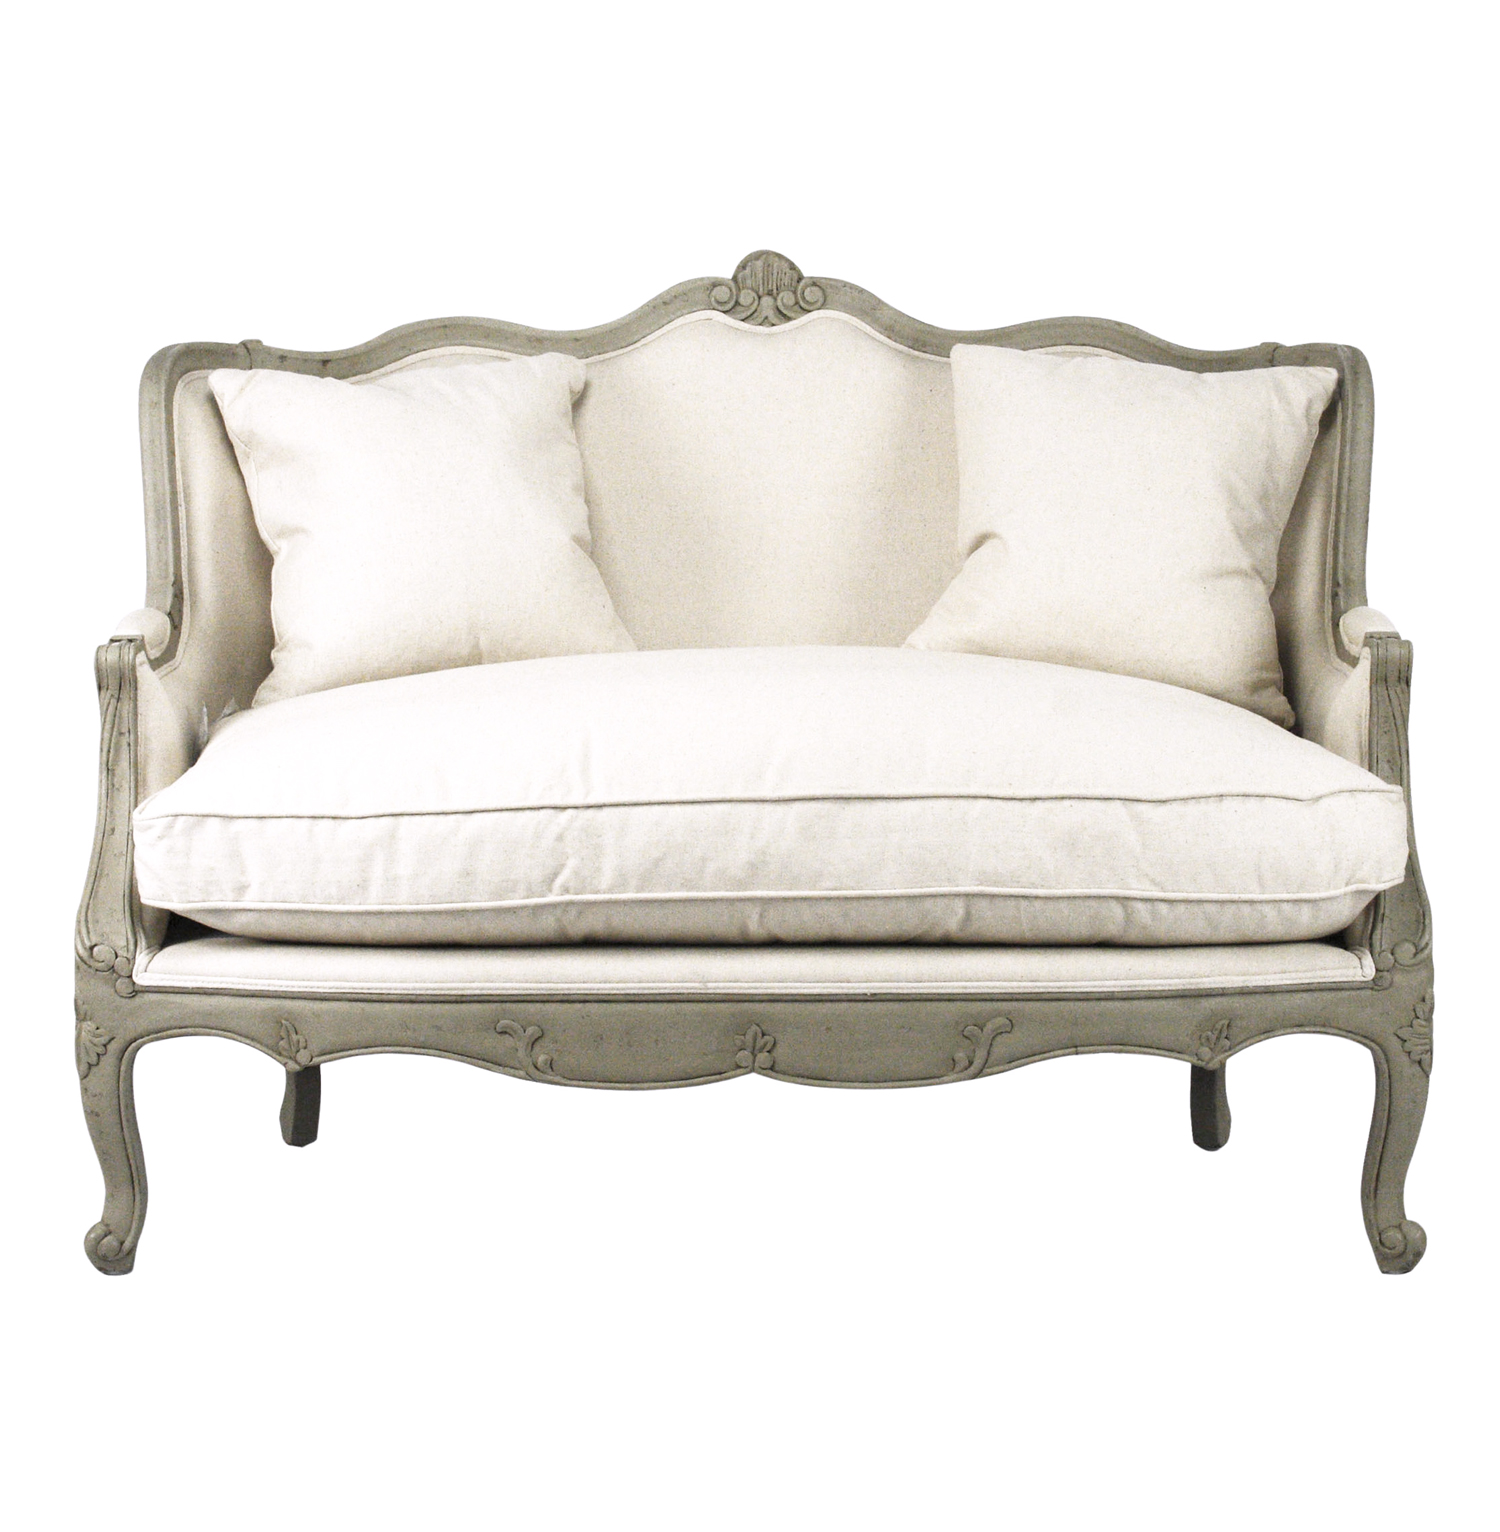 Green Settee Adele French Country Distressed Sage Green And White